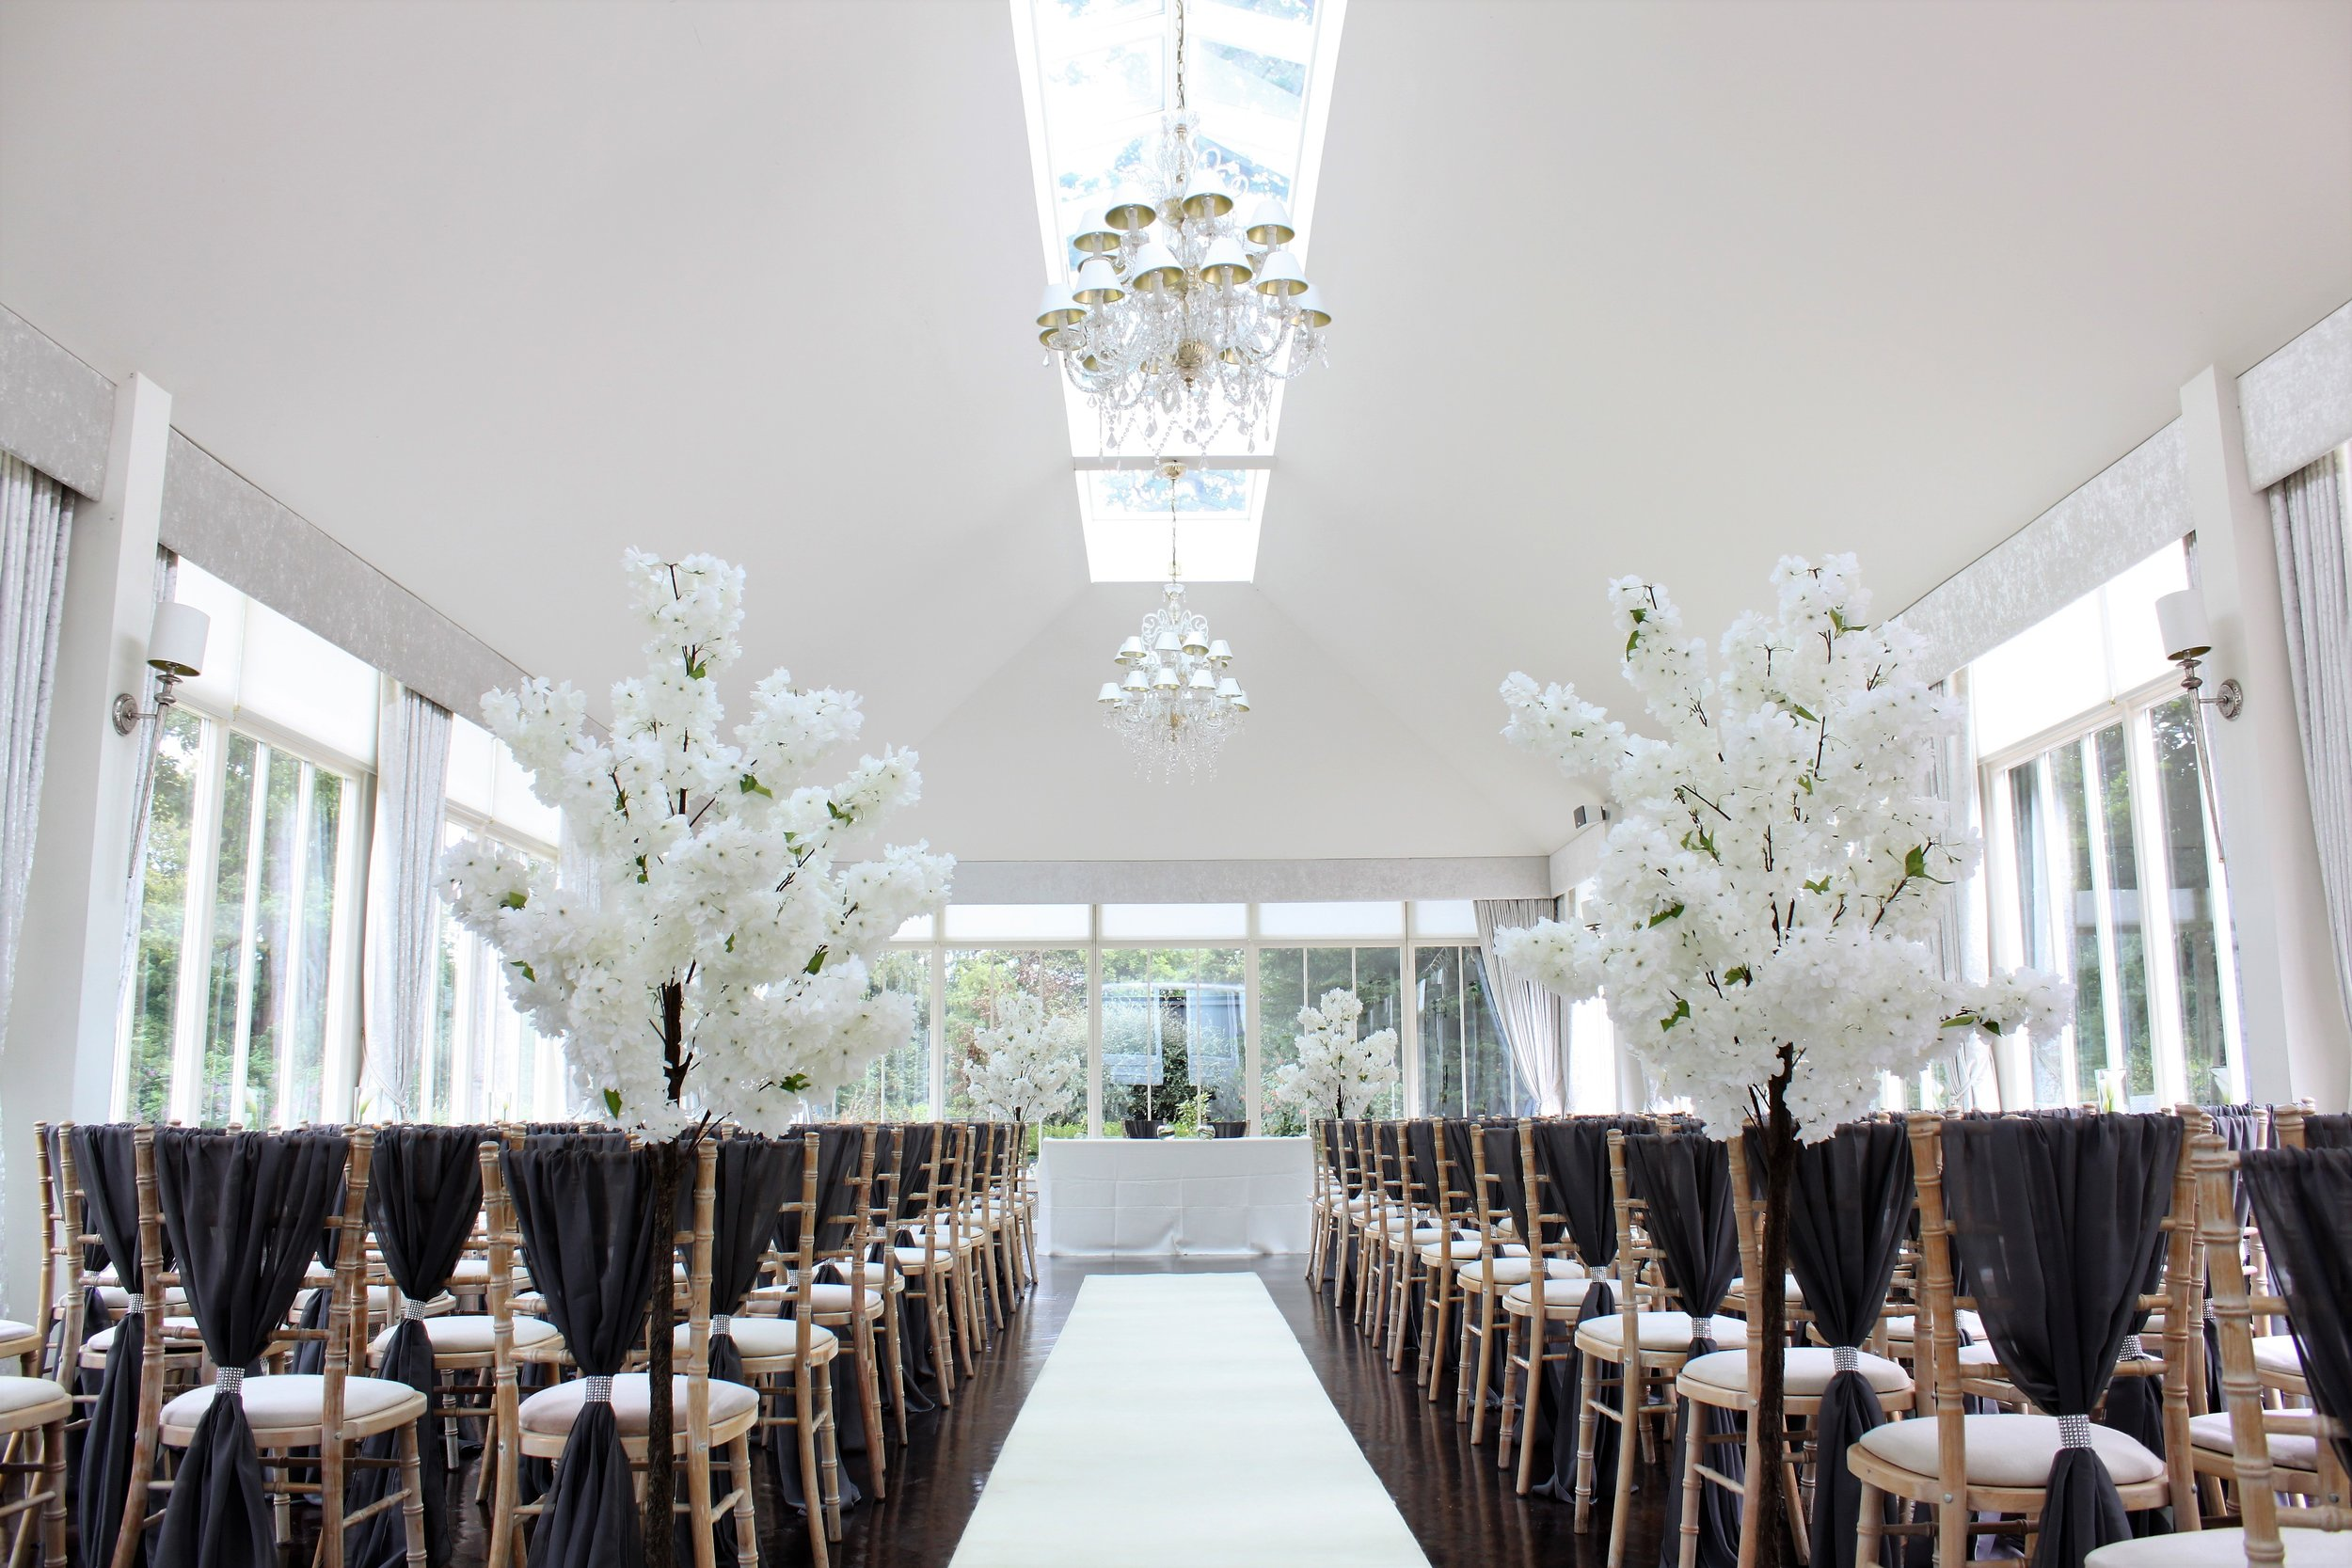 Blossom Trees - Make the perfect statement with our luxury range of 4ft and 6ft white blossom trees. A matching set that can be used to style your aisle then moved to create elegant table centrepieces.Hire from only £35 each or 10 for £300!